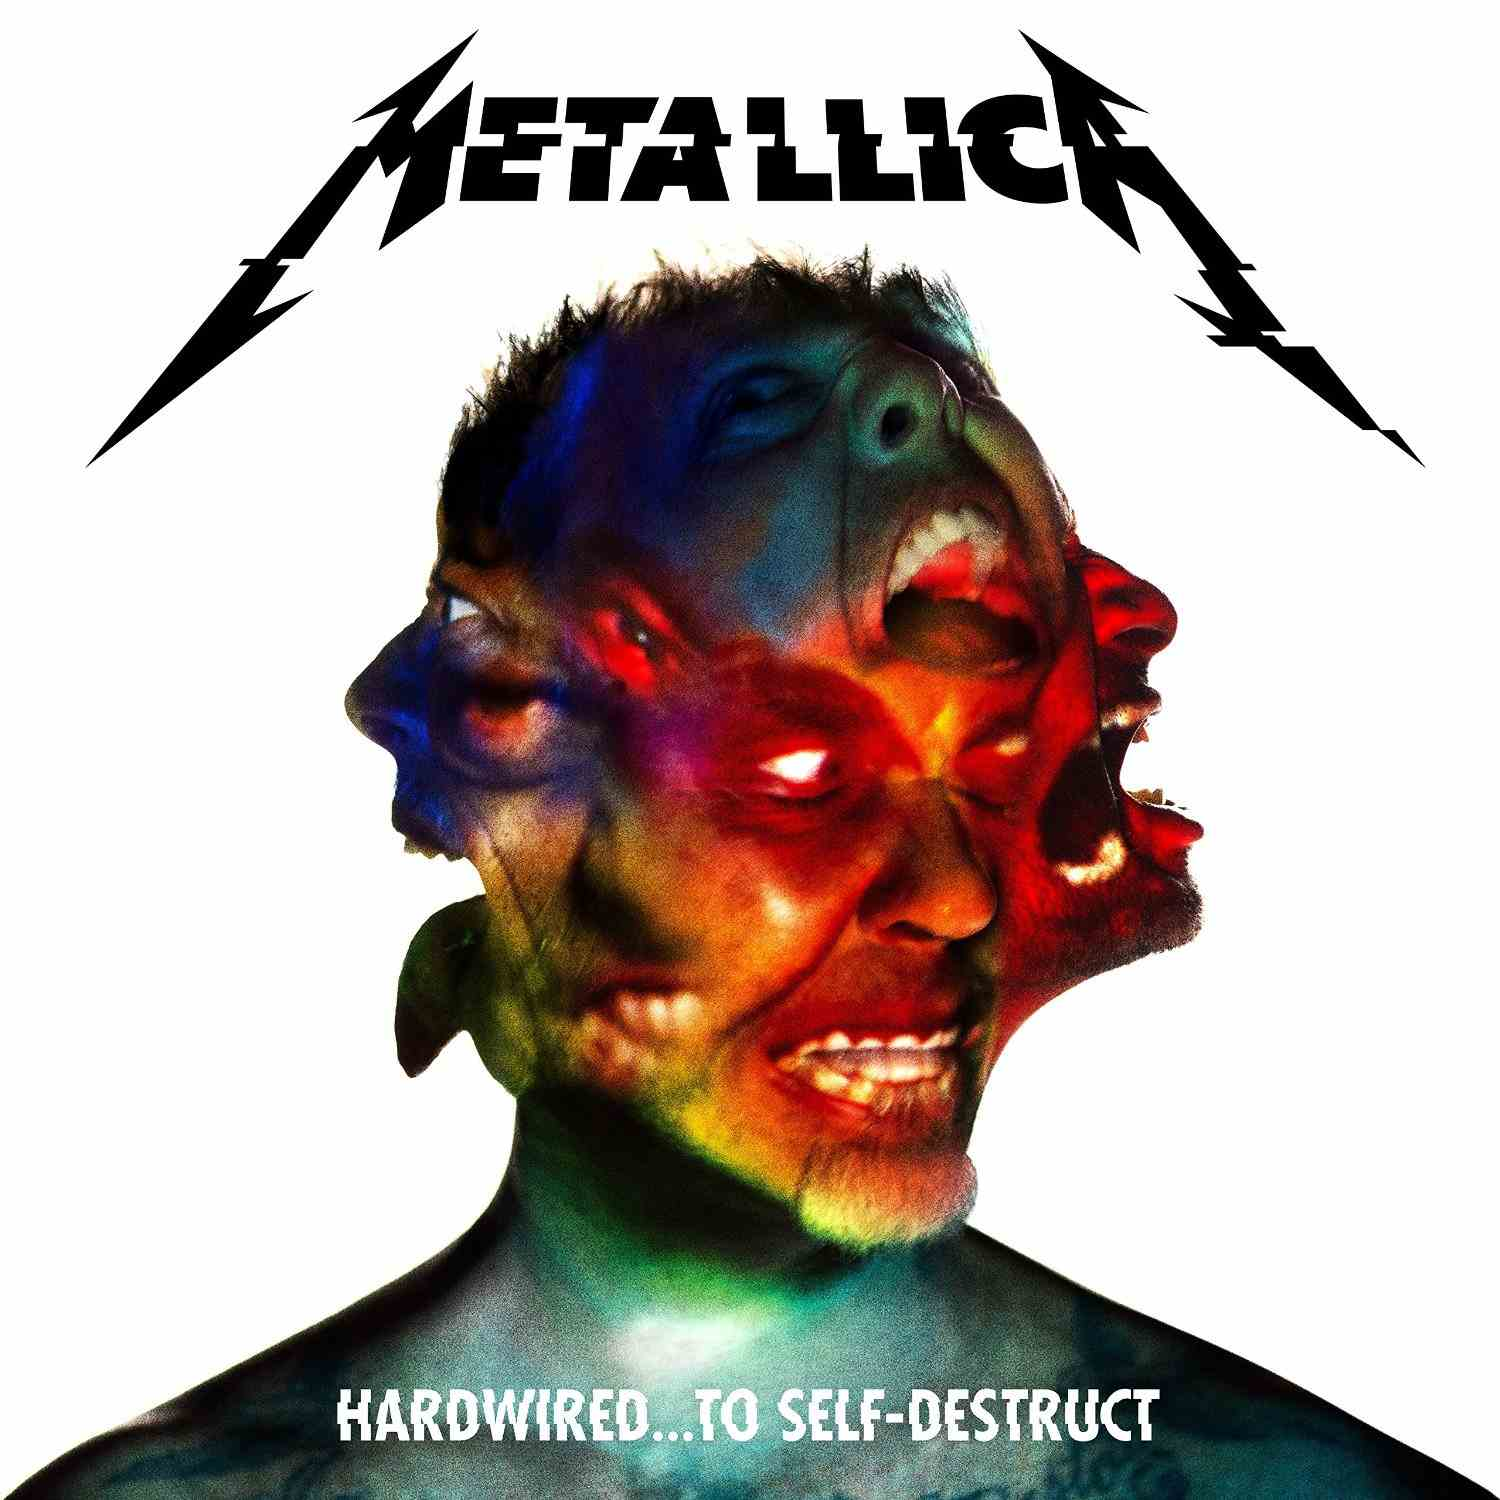 METALLICA - Hardwired...To Self-Destruct ( DeLuxe Edition ) 3 CD